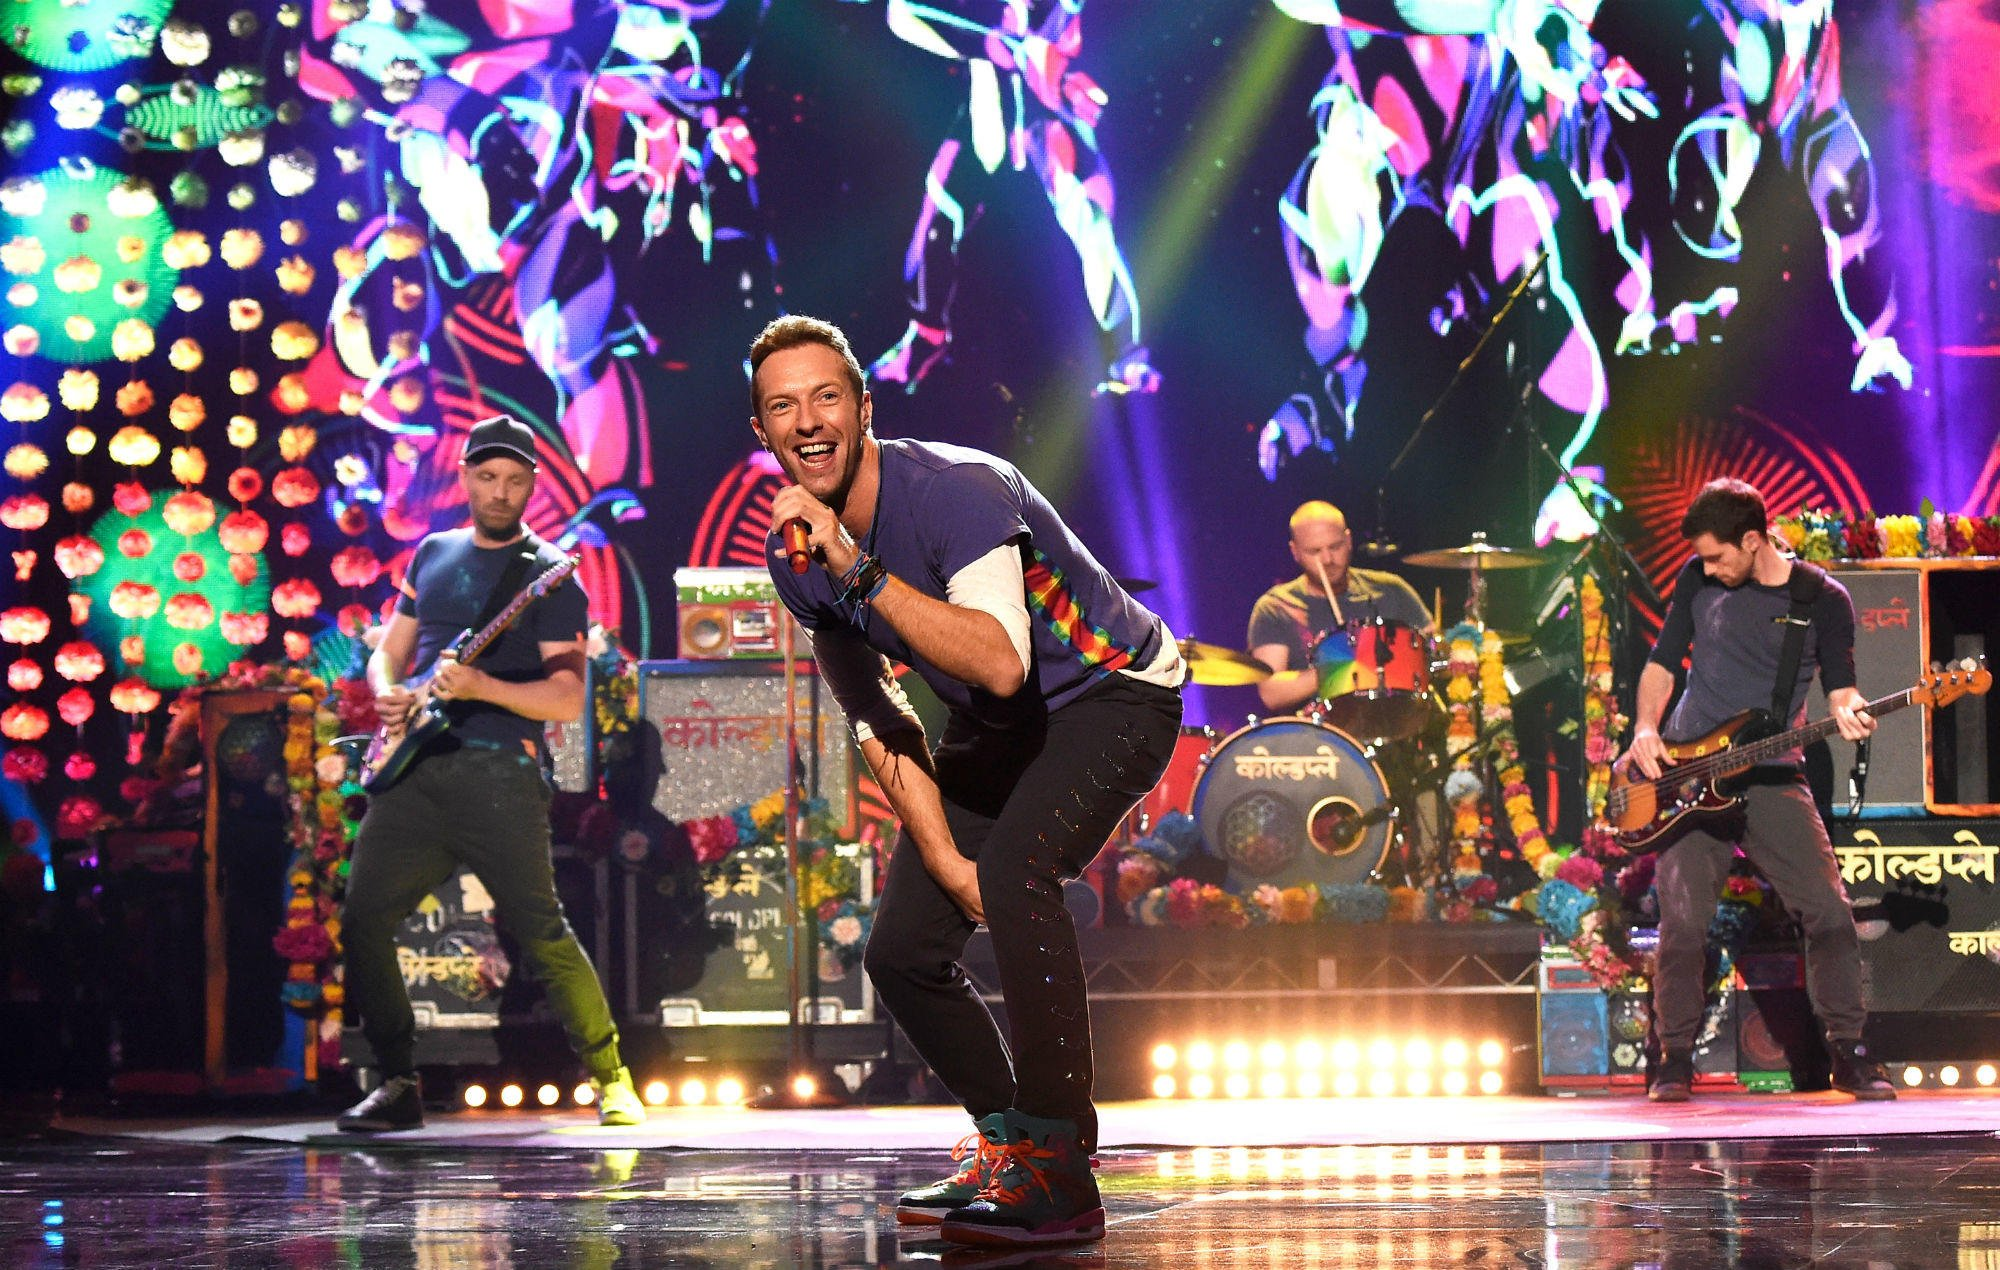 Coldplay to return next year with 'surprising' new album https://t.co/lOf9gRQgqi https://t.co/zw3IWfZdA5